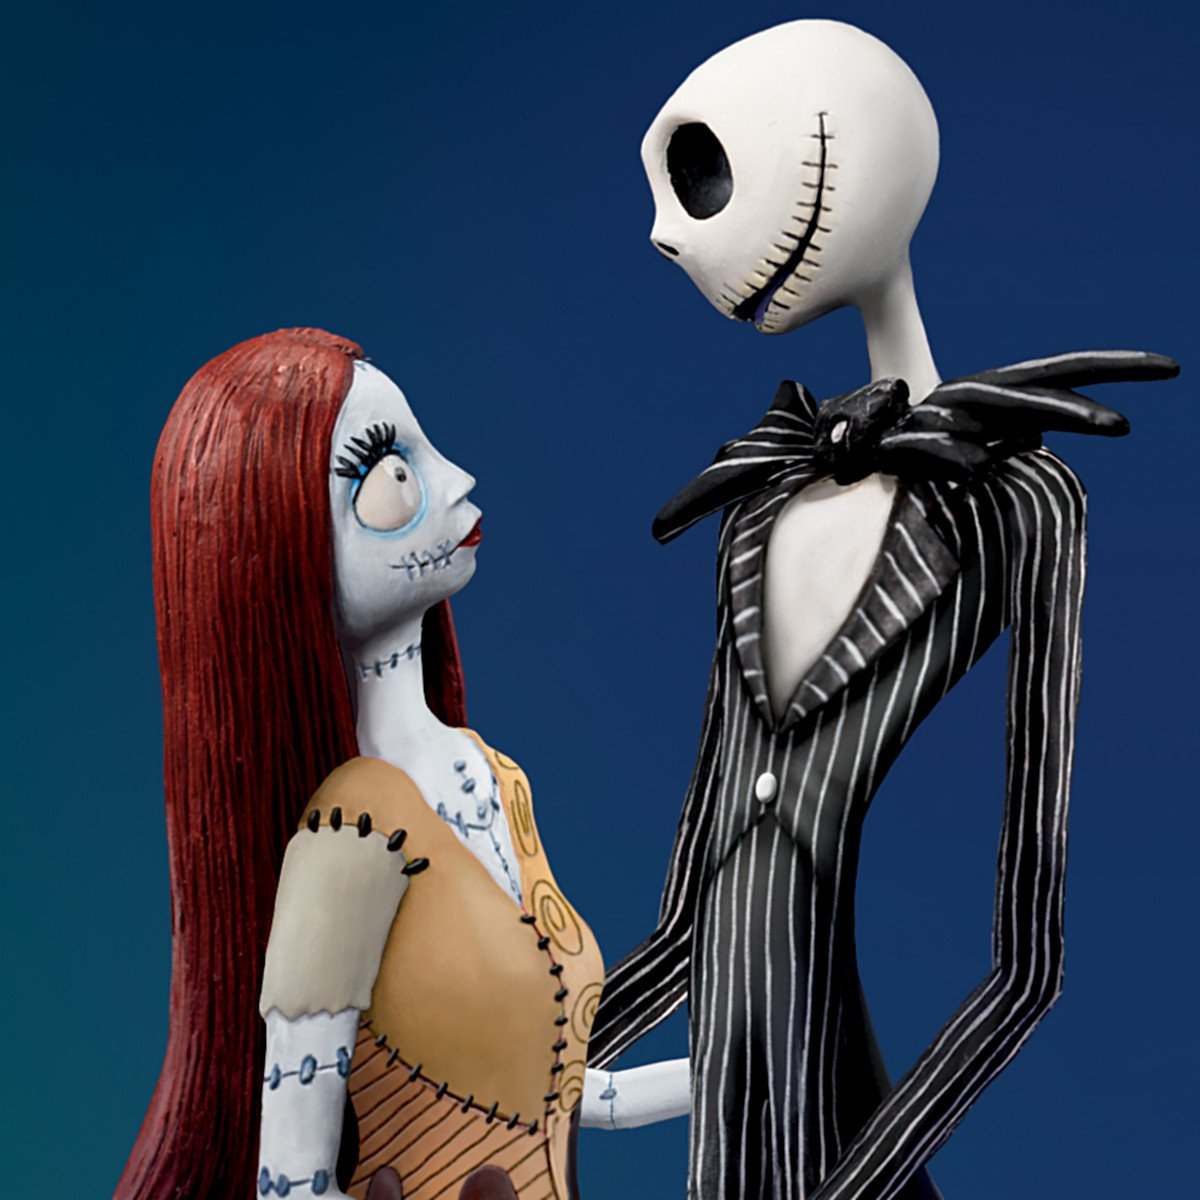 amazoncom the nightmare before christmas simply meant to be jack and sally musical figurine by the bradford exchange home kitchen - The Nightmare Before Christmas Jack And Sally